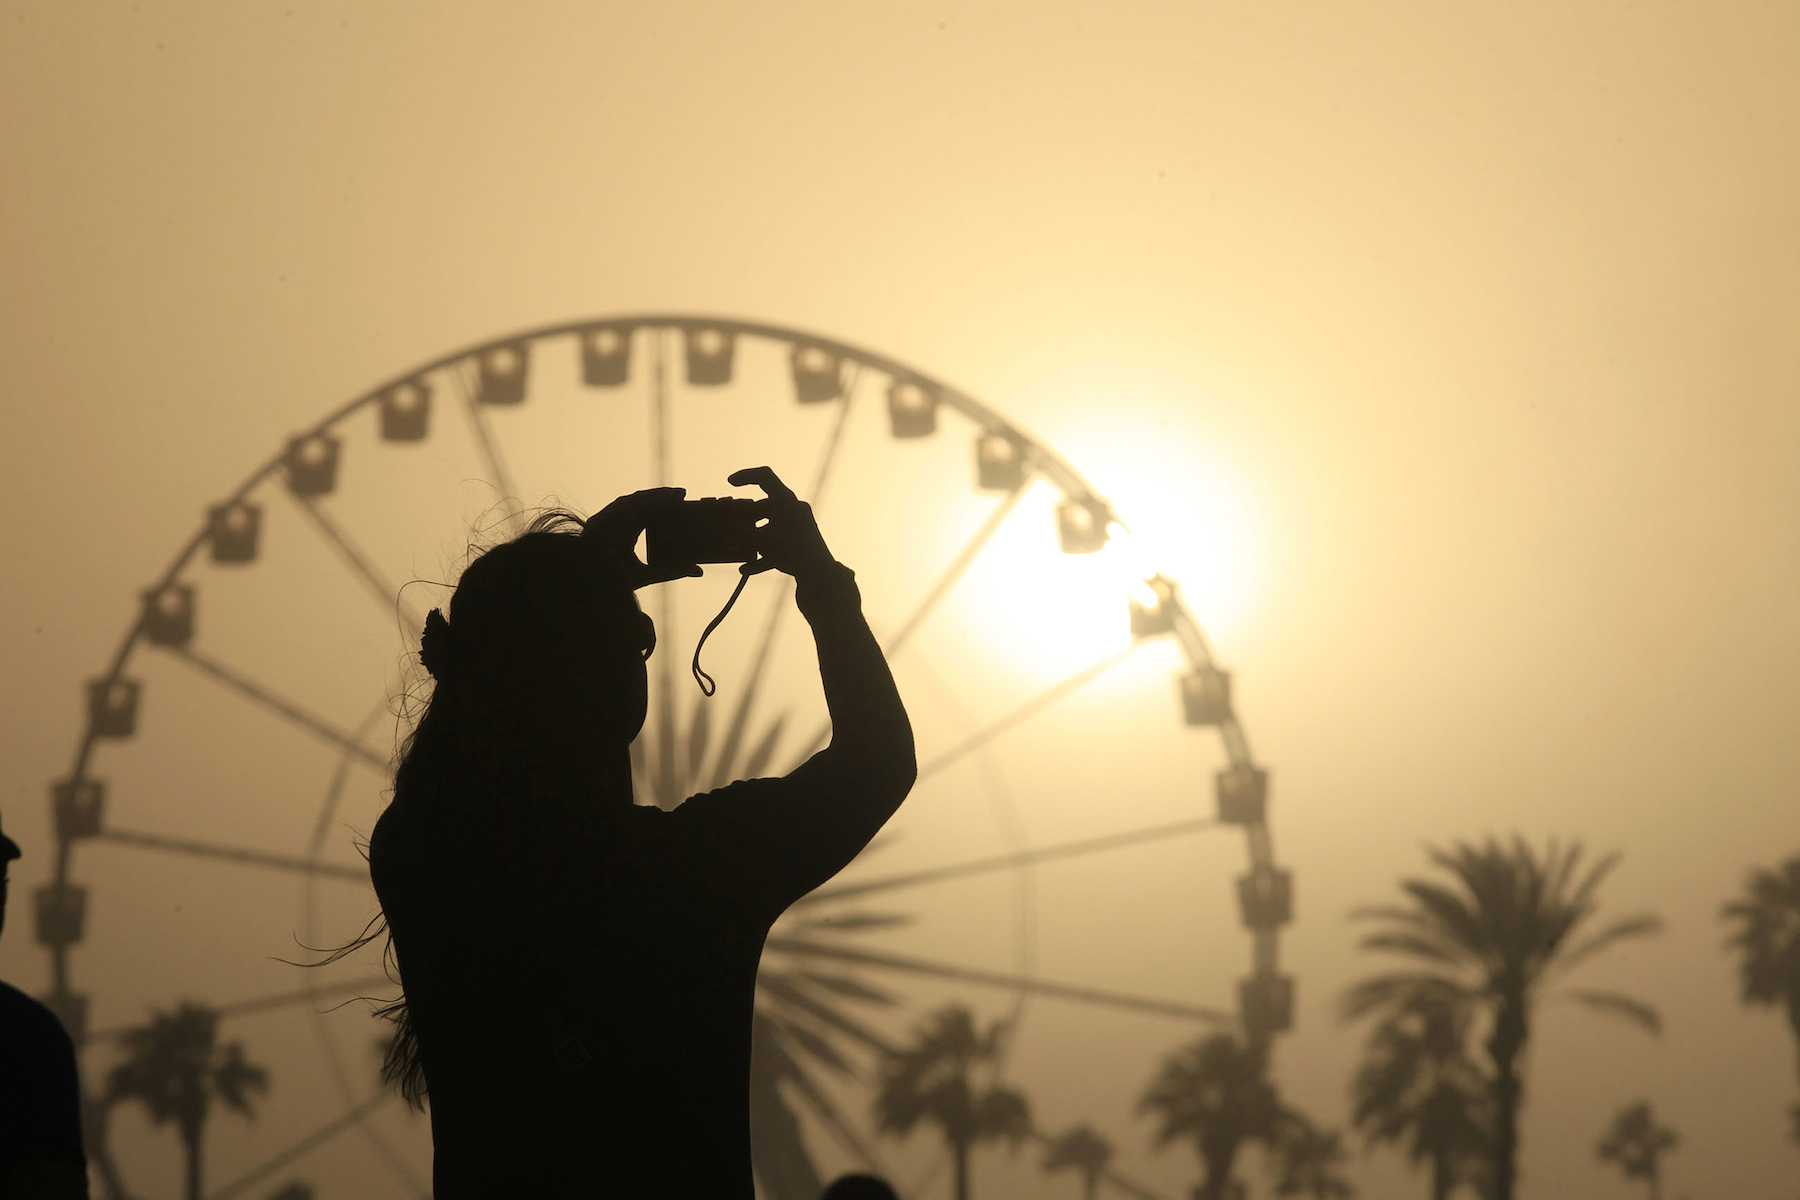 The sun sets on another day of the Coachella Music and Arts Festival on Sunday, April 14, 2013, in Indio, California. (Brian van der Brug/Los Angeles Times/MCT)